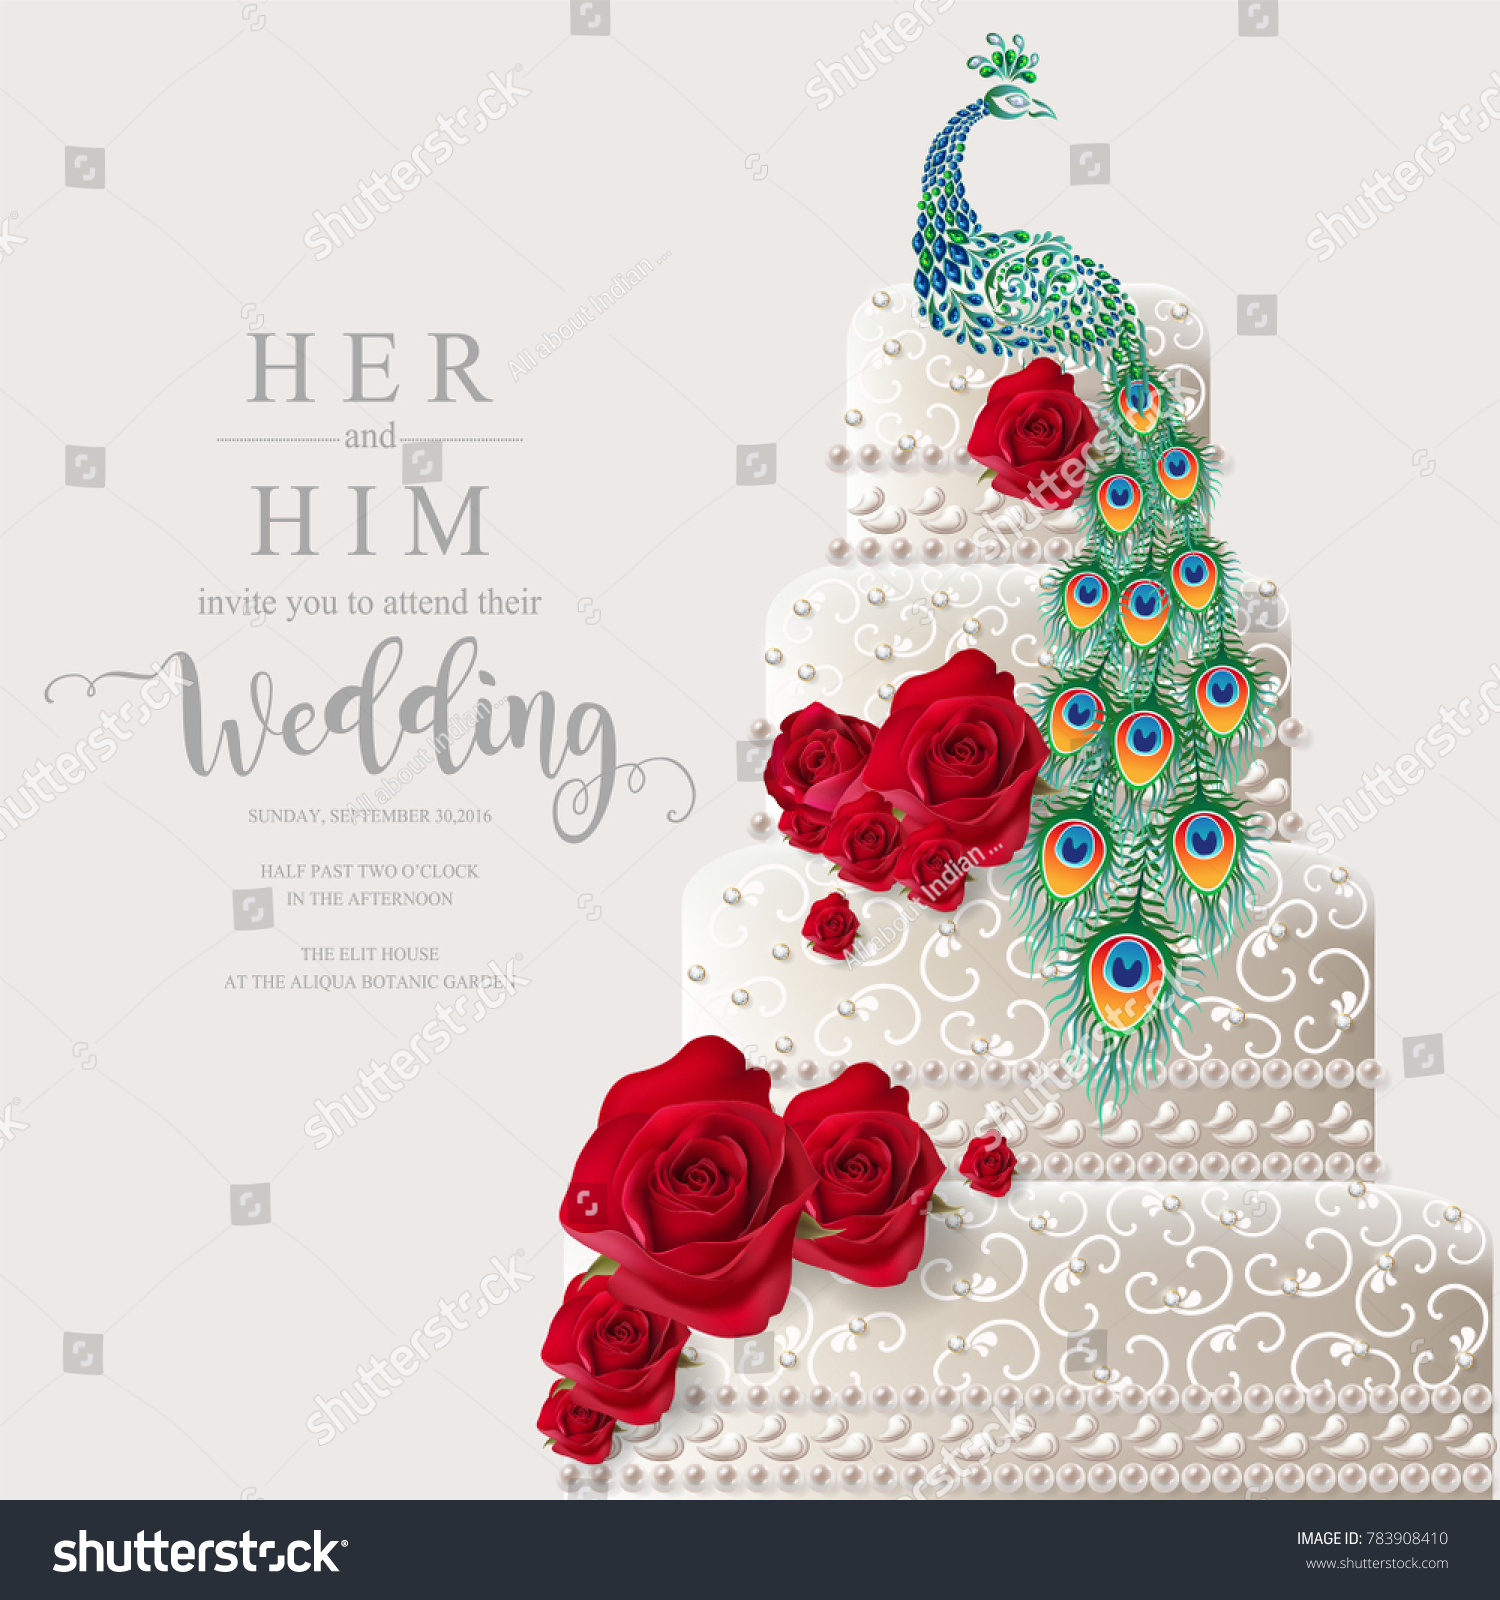 Indian Wedding Invitation Card Templates Realistic Stock Vector ...